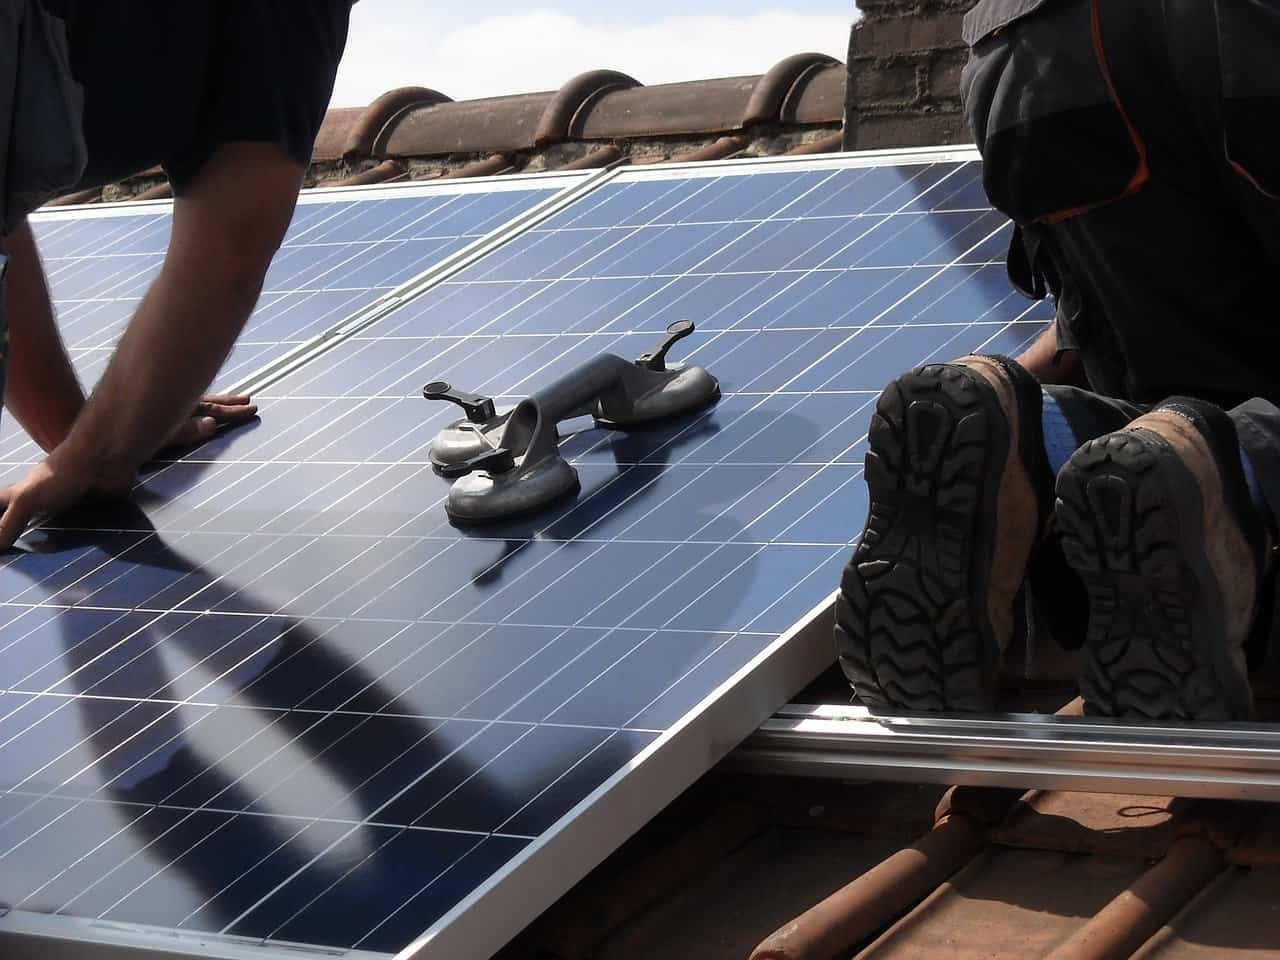 The-Dos-and-Don'ts-of-Getting-Solar-Energy